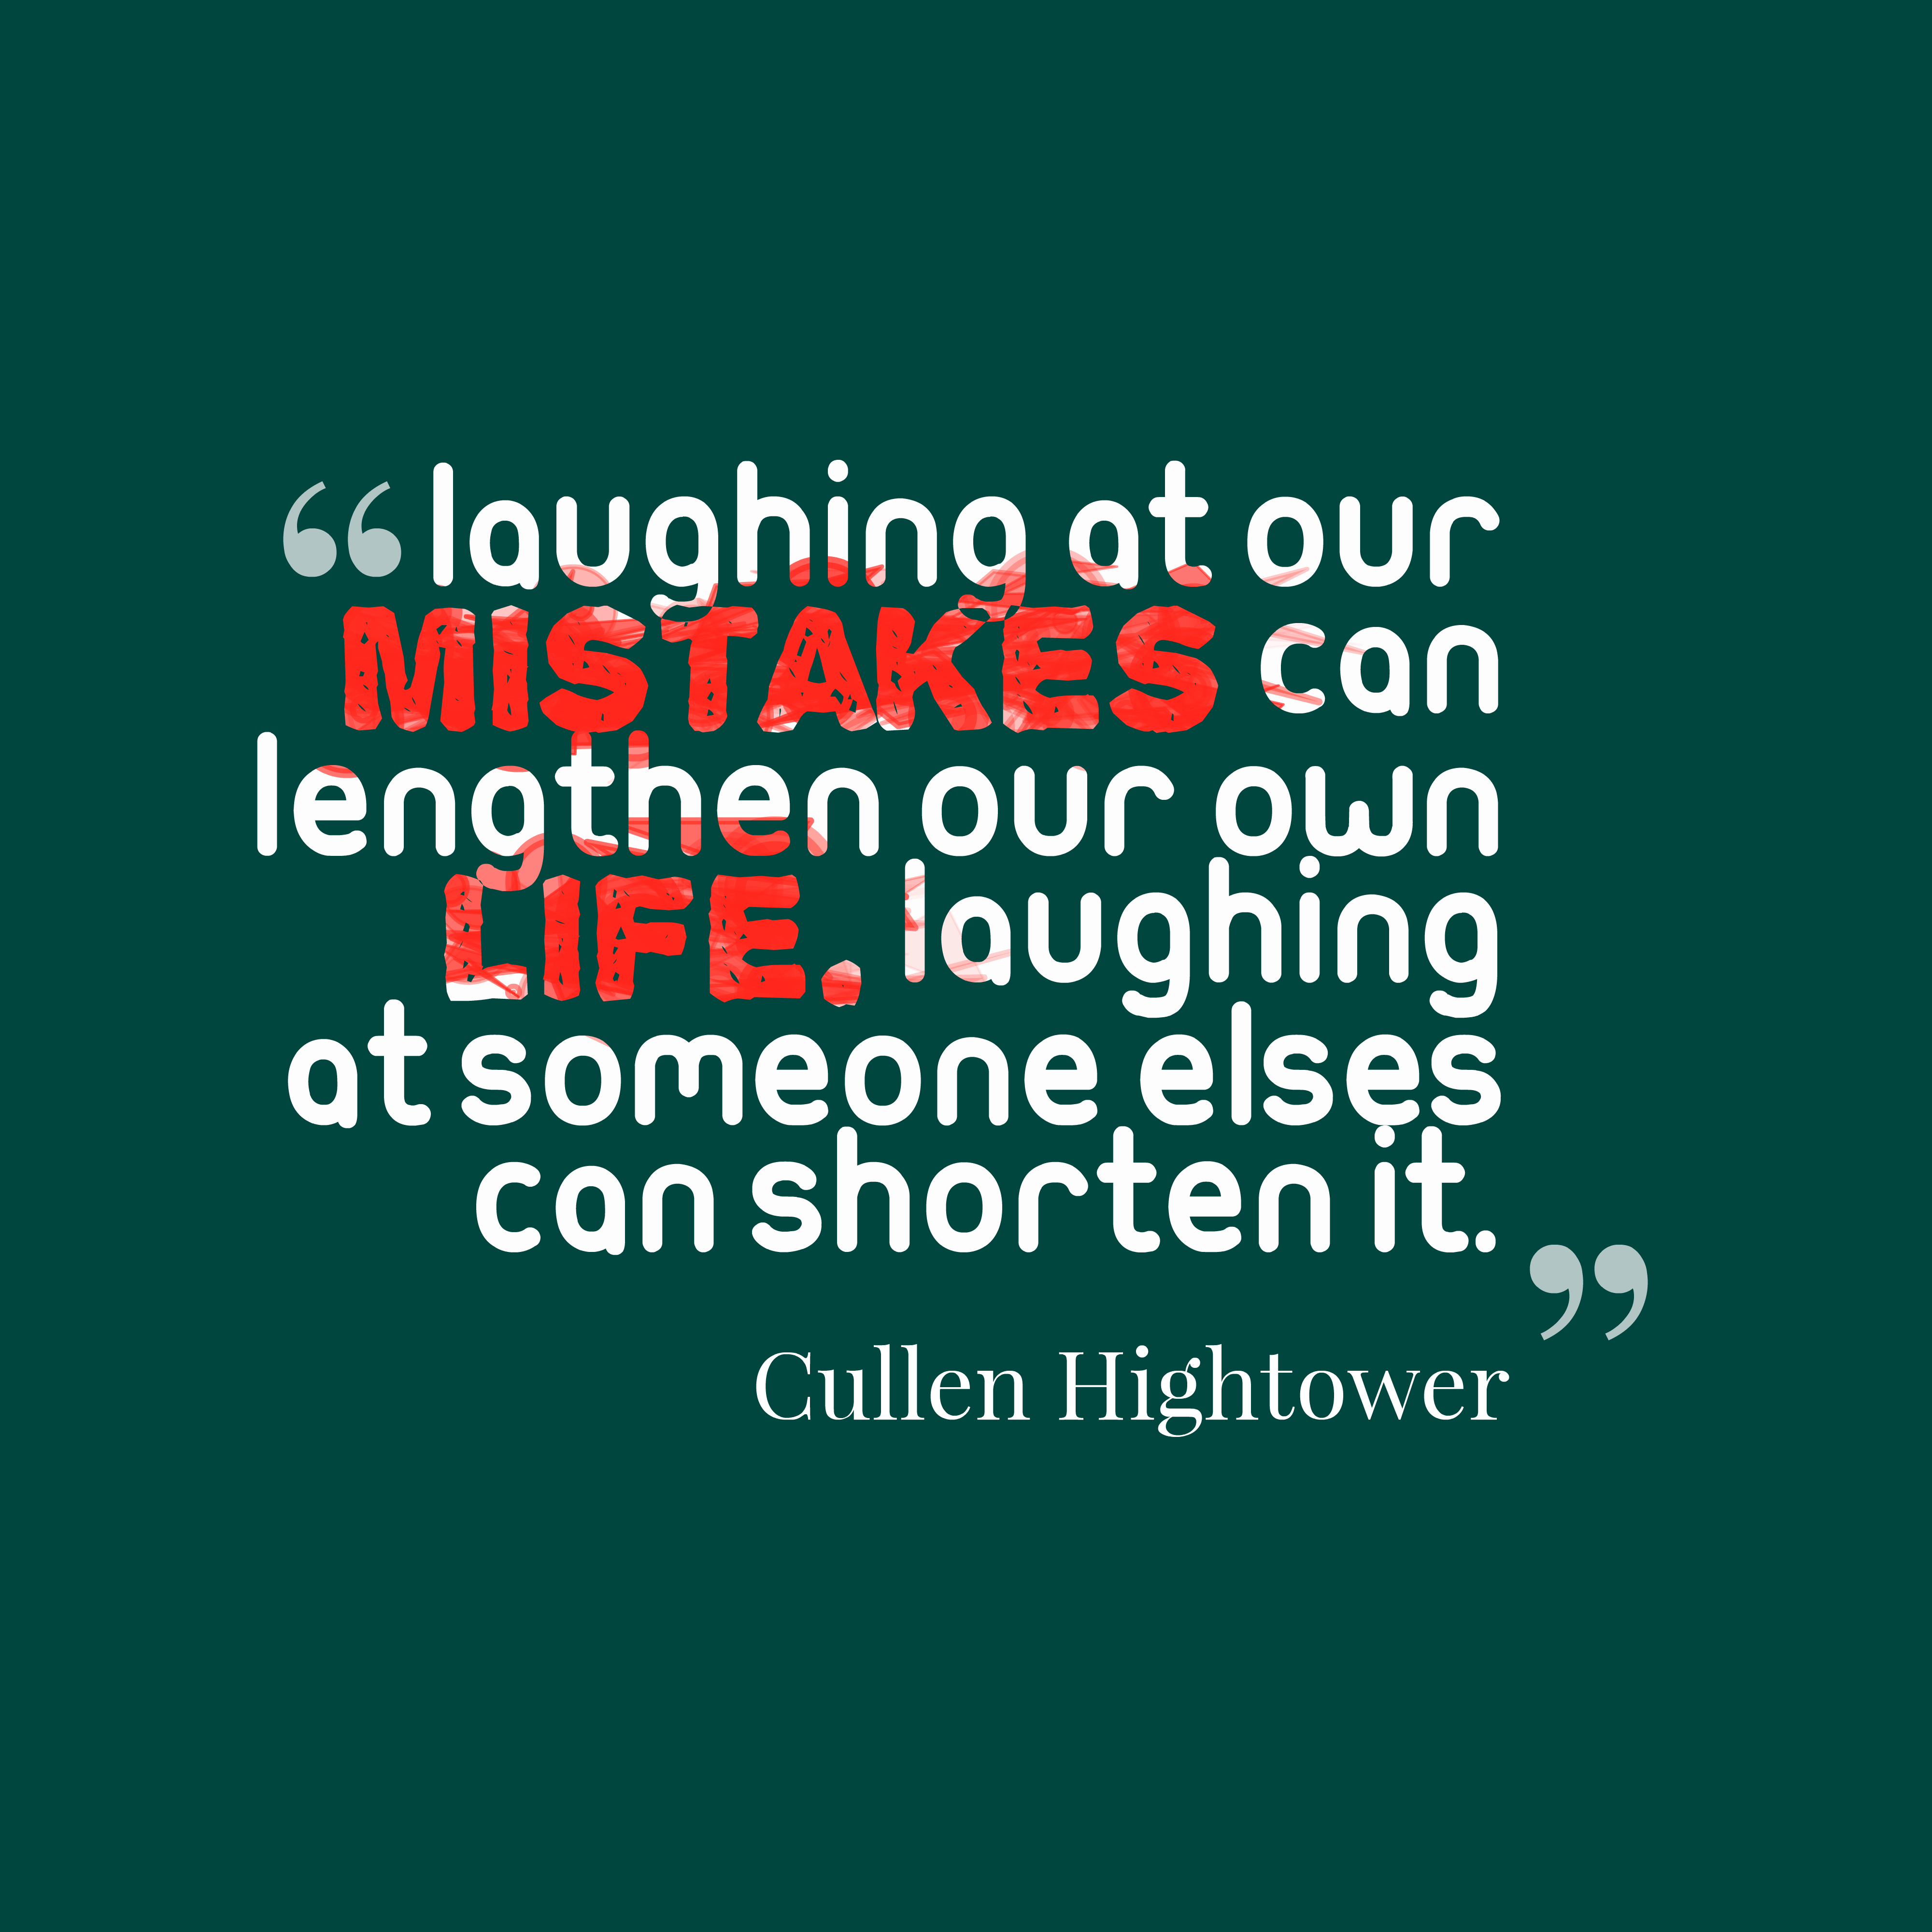 Quotes image of Laughing at our mistakes can lengthen our own life. Laughing at someone else's can shorten it.